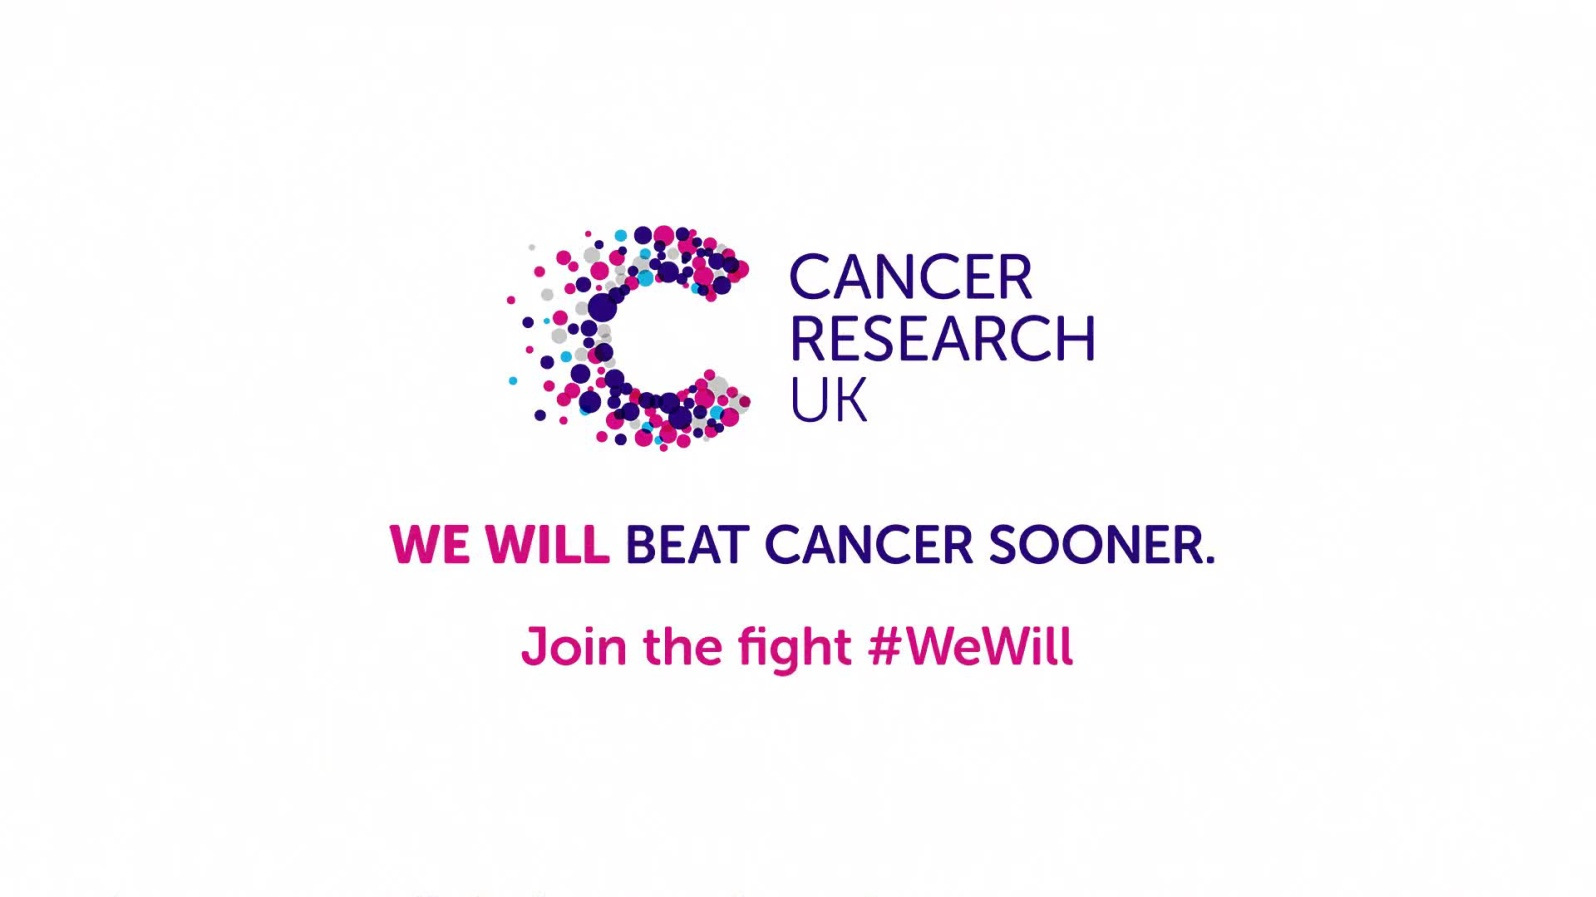 sc-cancer-research-uk-we-will-3